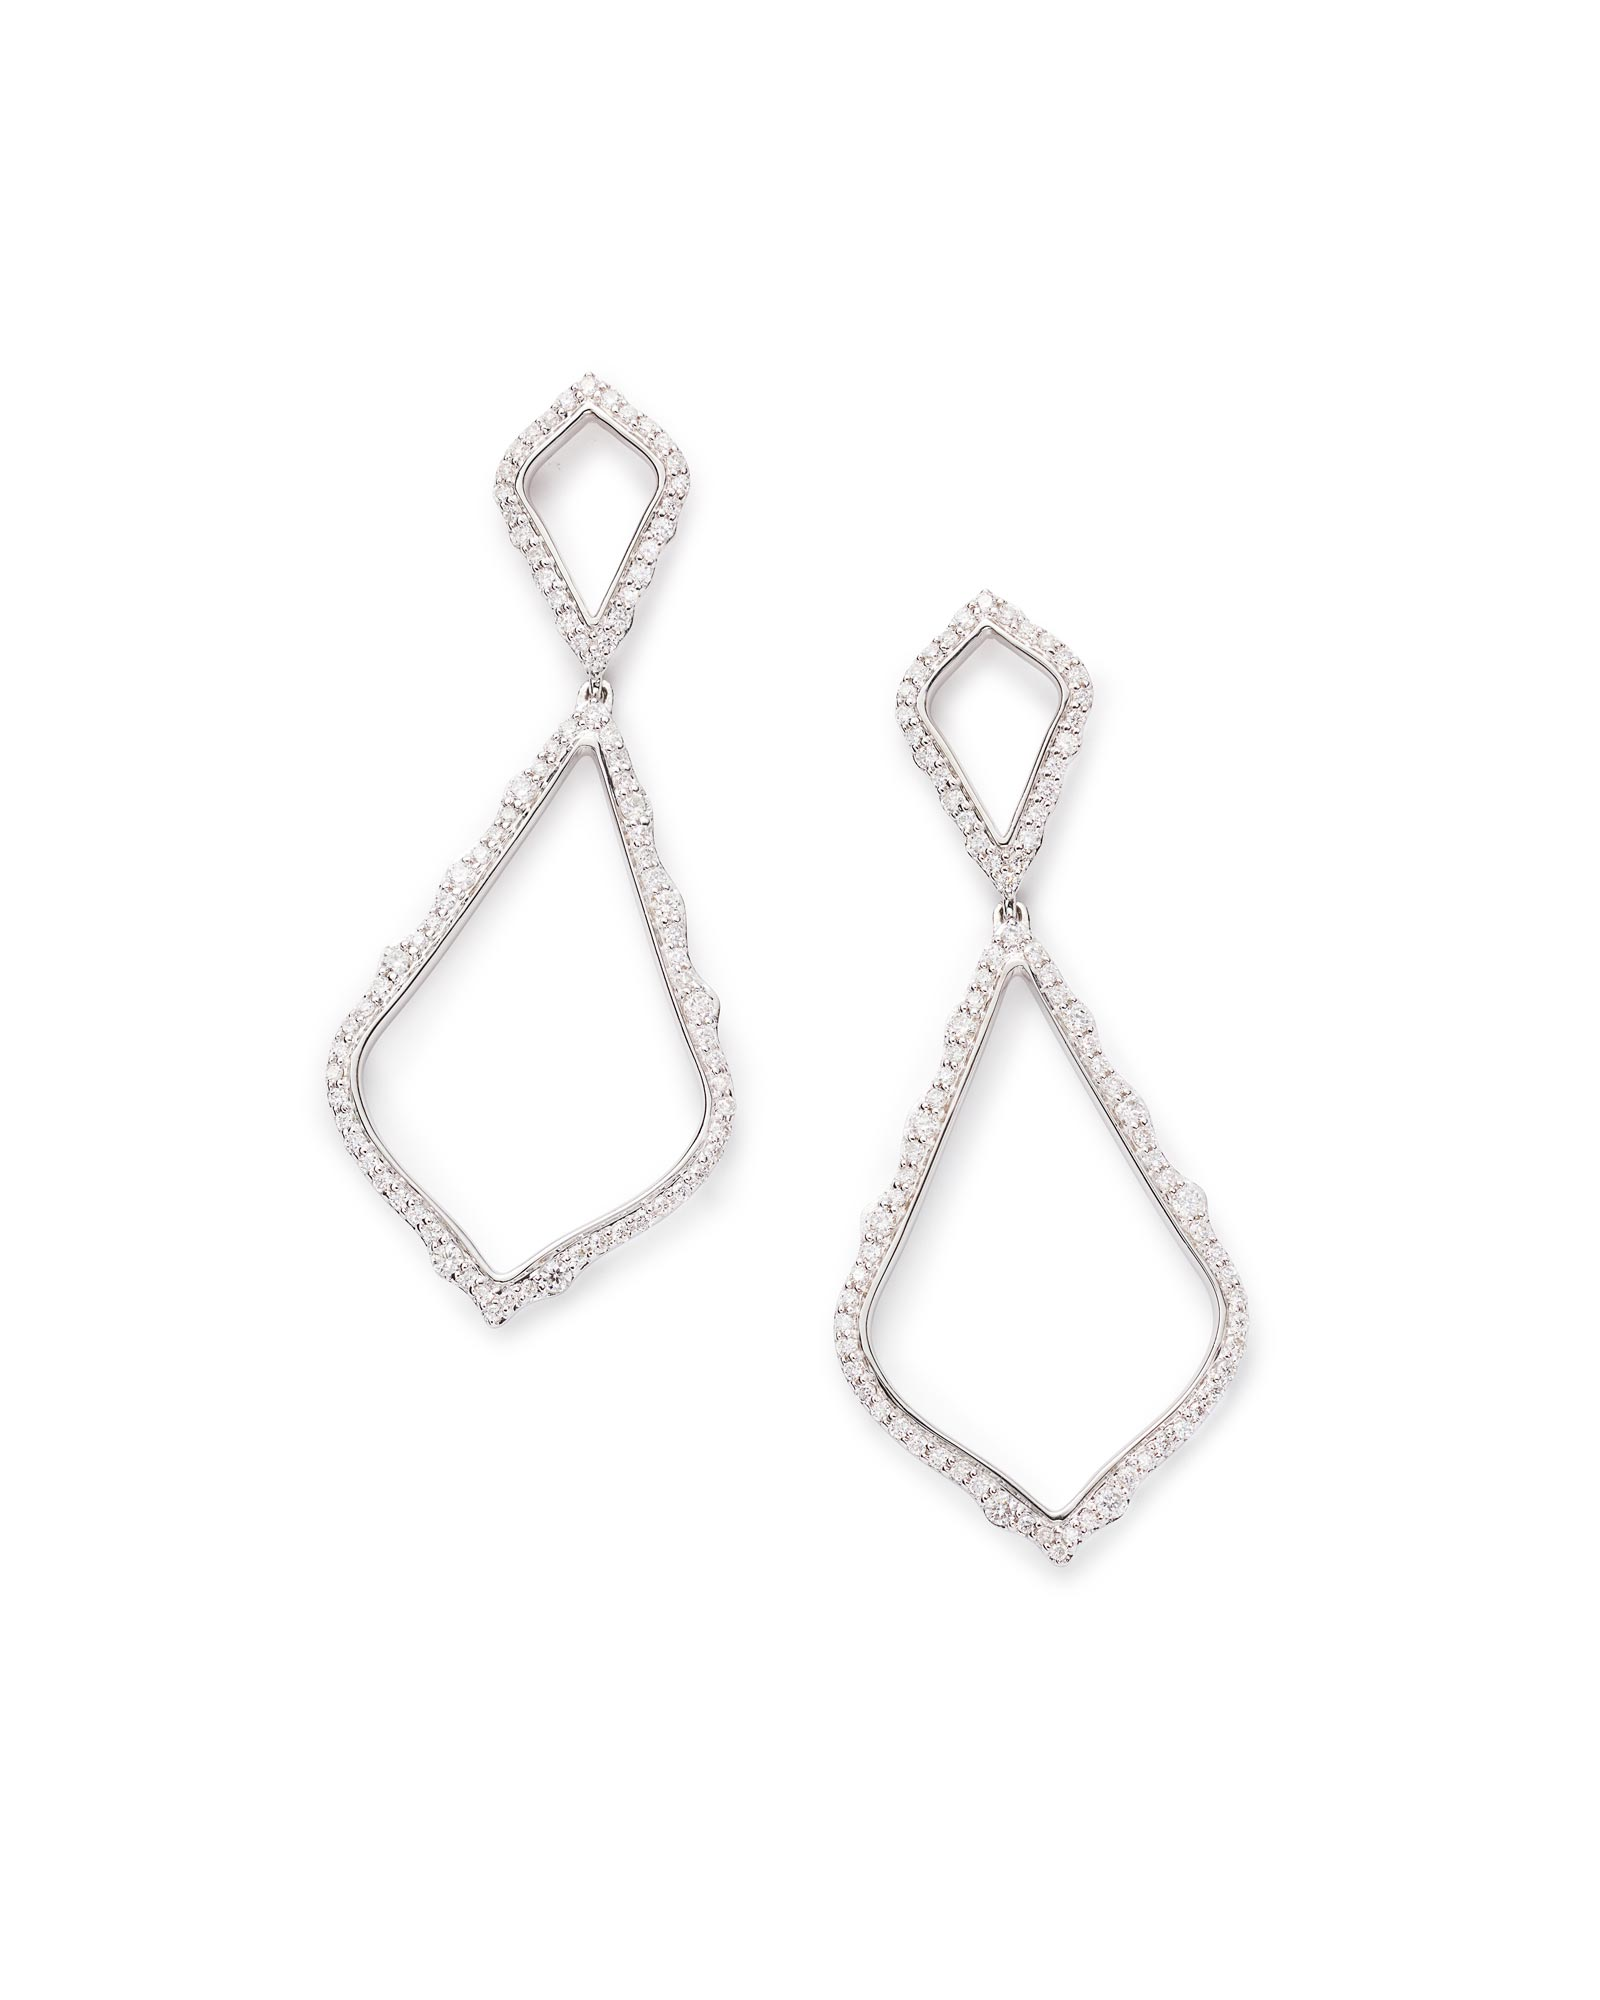 Alexa Statement Earrings in Pave Diamond and 14k White Gold